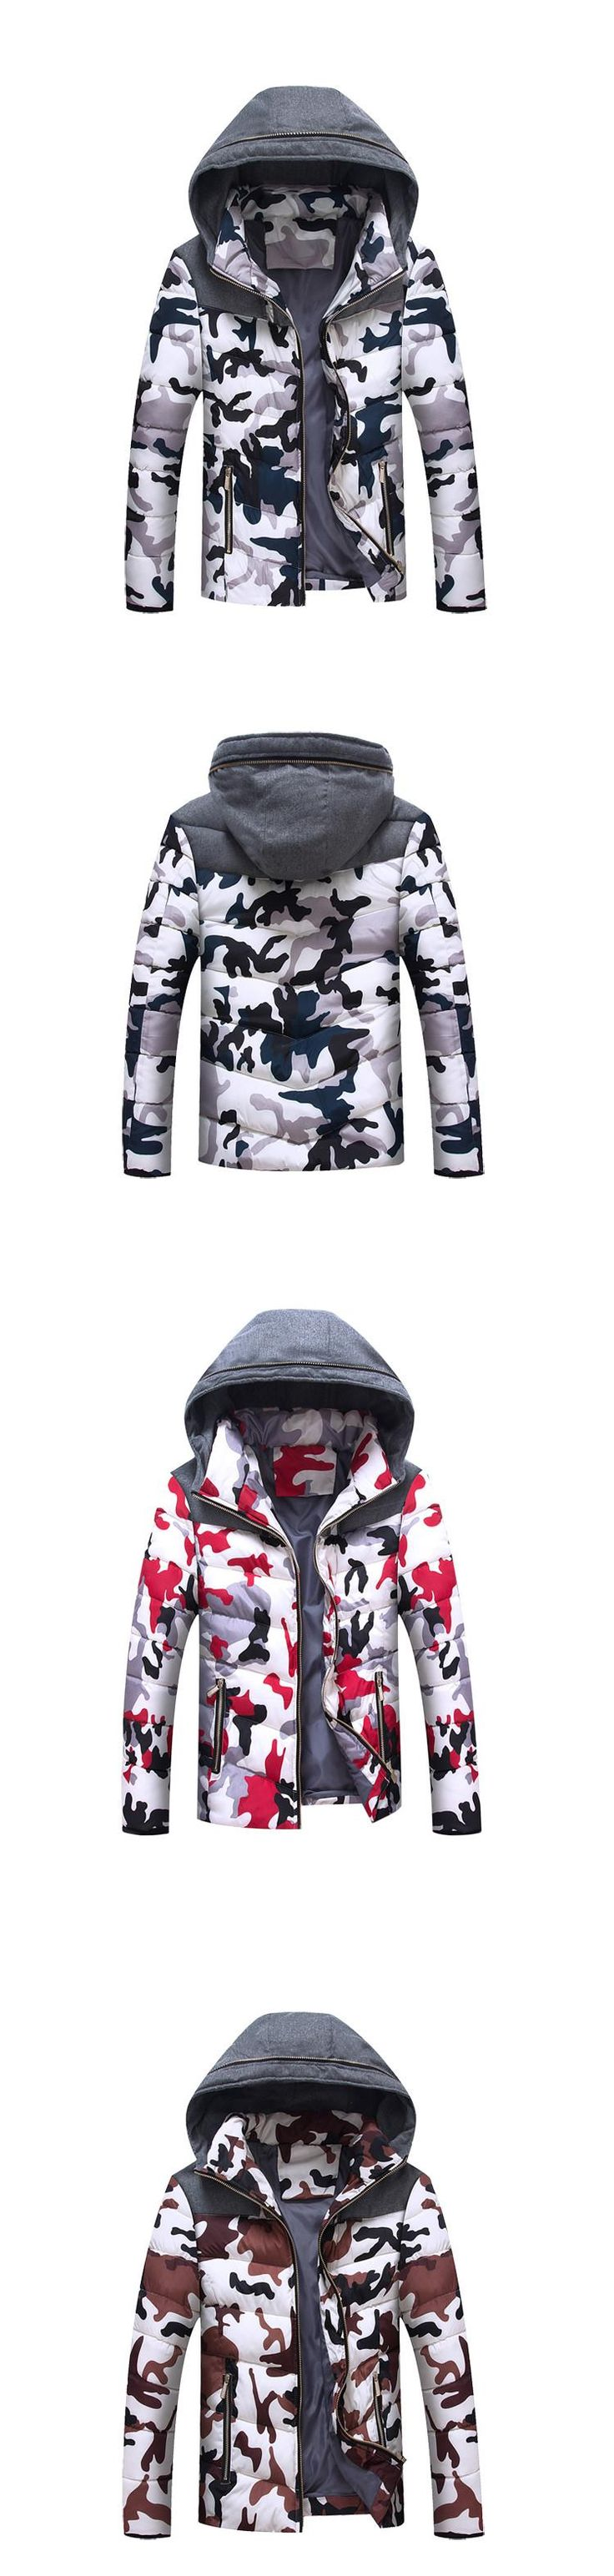 Aliexpress.com : Buy Grandwish 2016 New Men's Camouflage Winter Coats Warm Cotton Padded Mens Down Hooded Jackets Coats Thicken Parkas Men 3XL from Reliable down parka men suppliers on Trending Jewelry